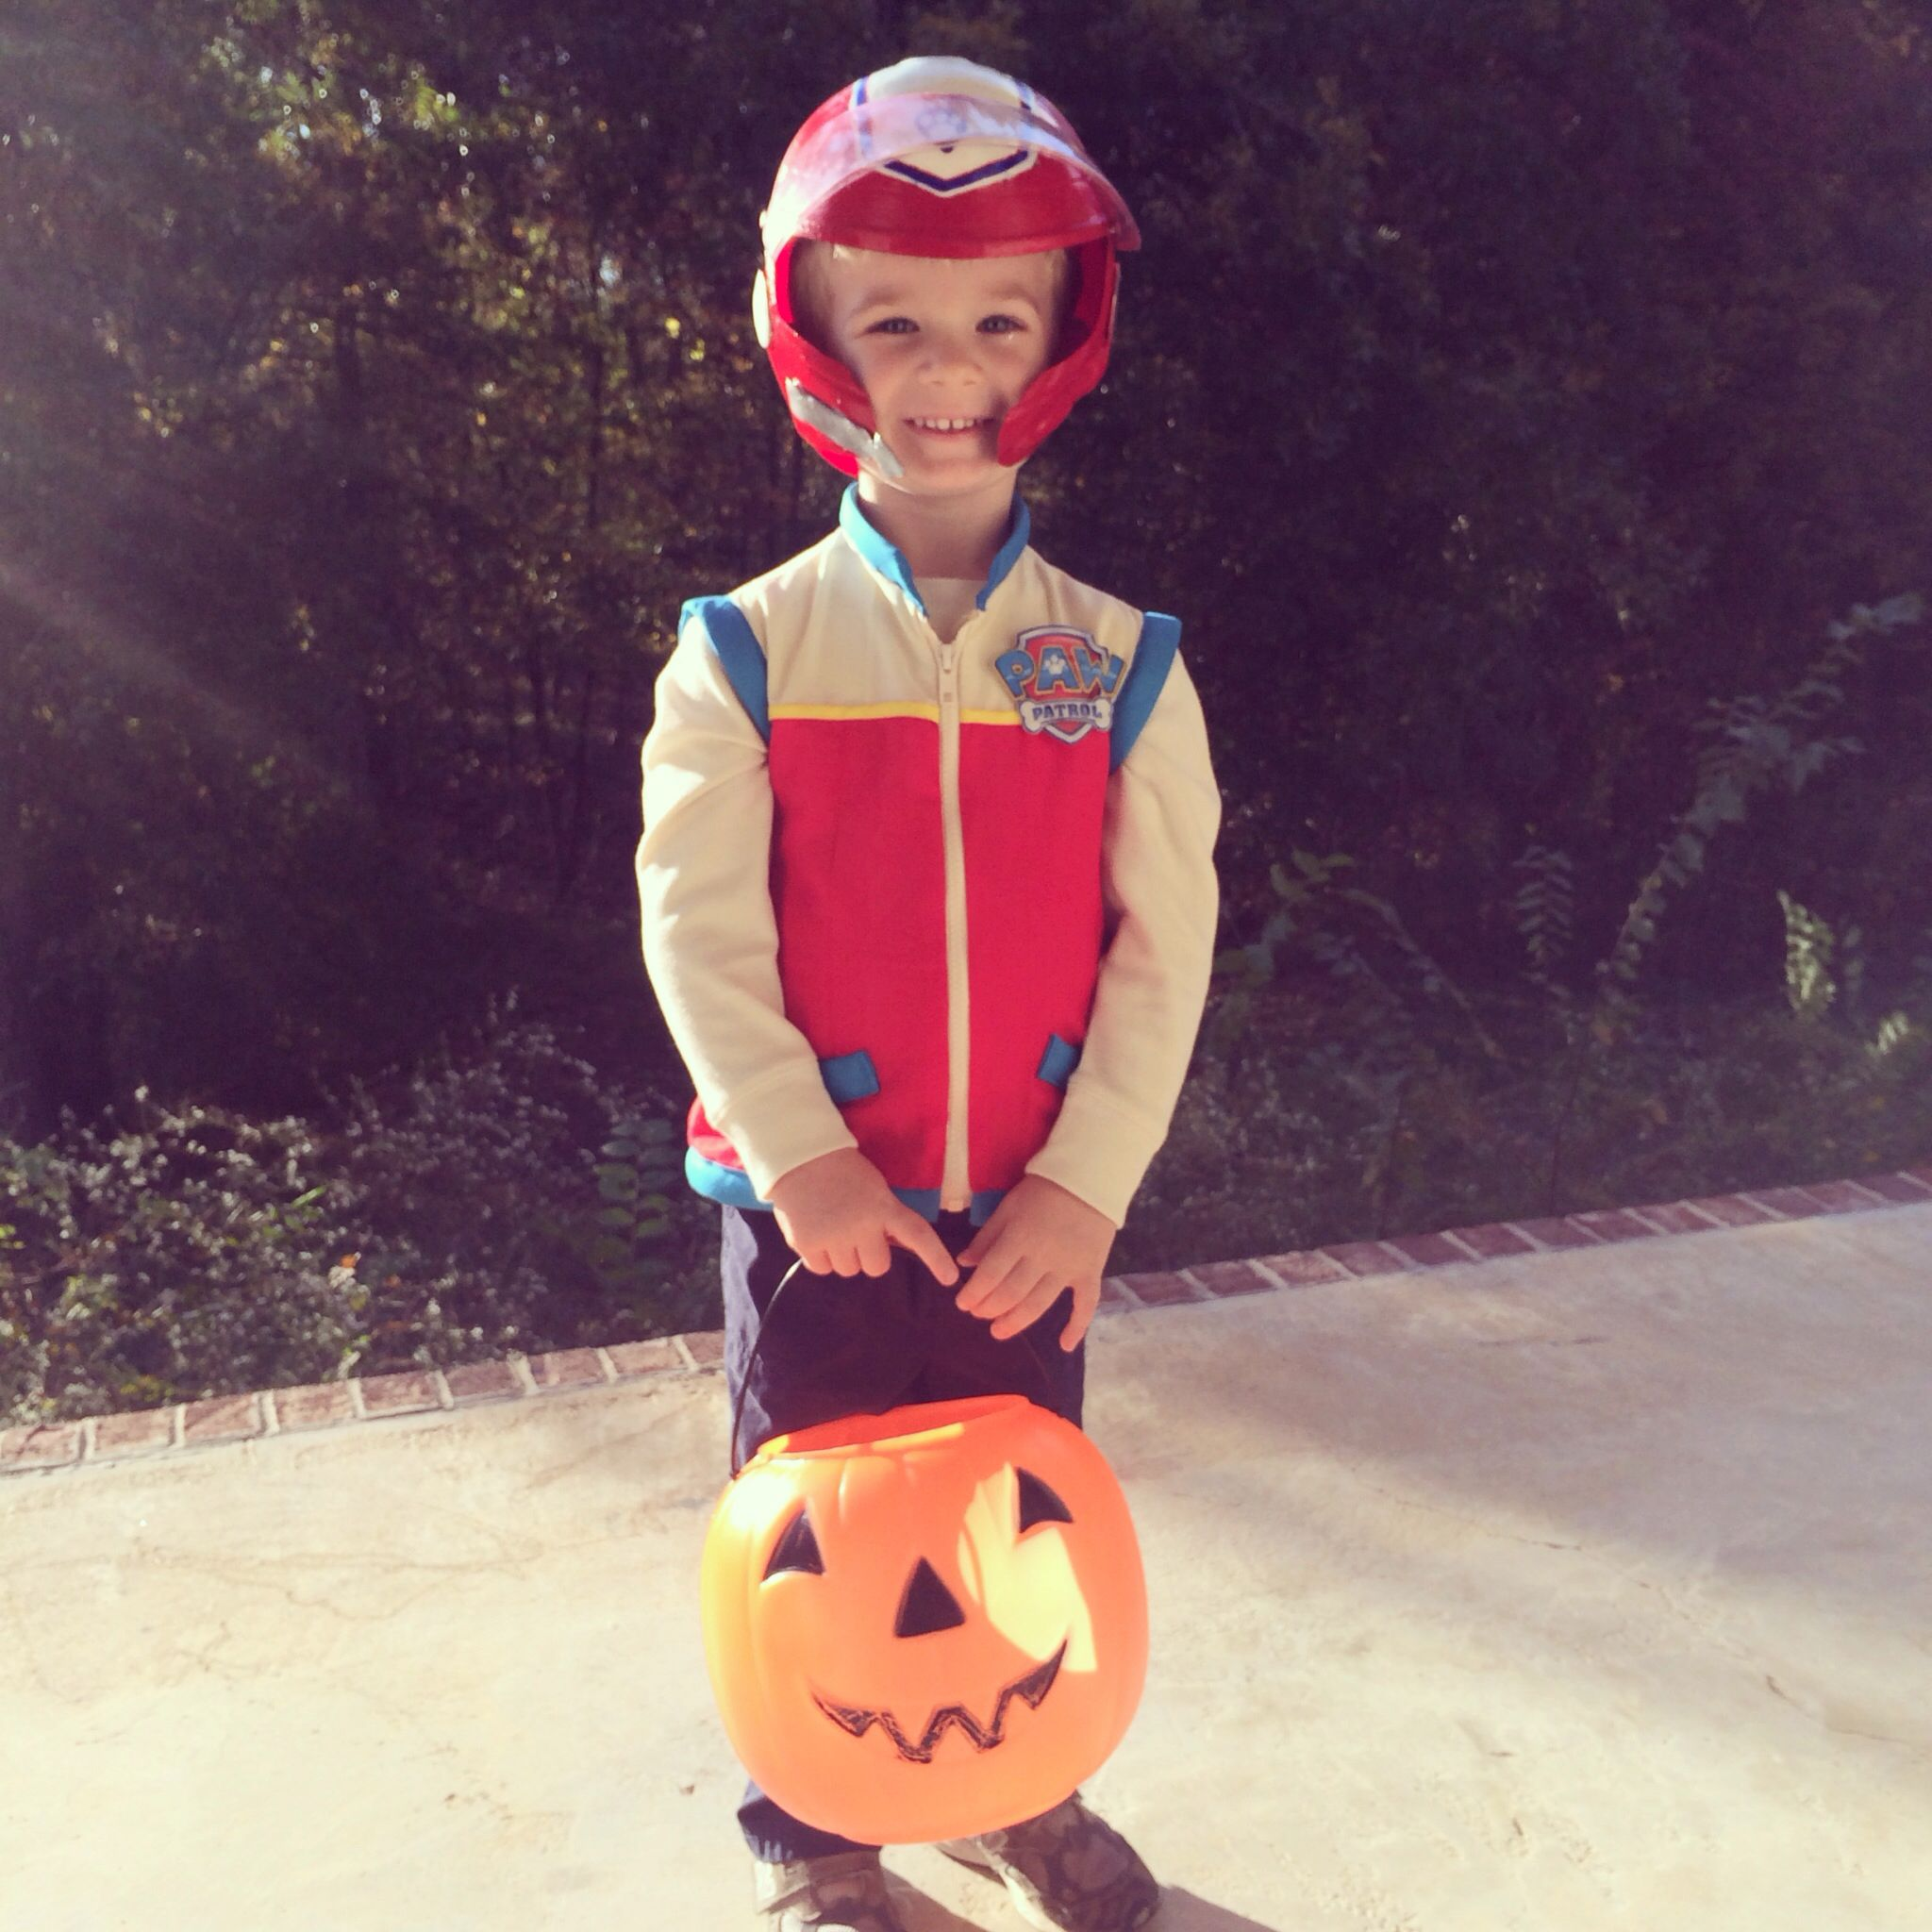 Homemade Halloween Costume: Ryder from Paw Patrol | Holidays ...